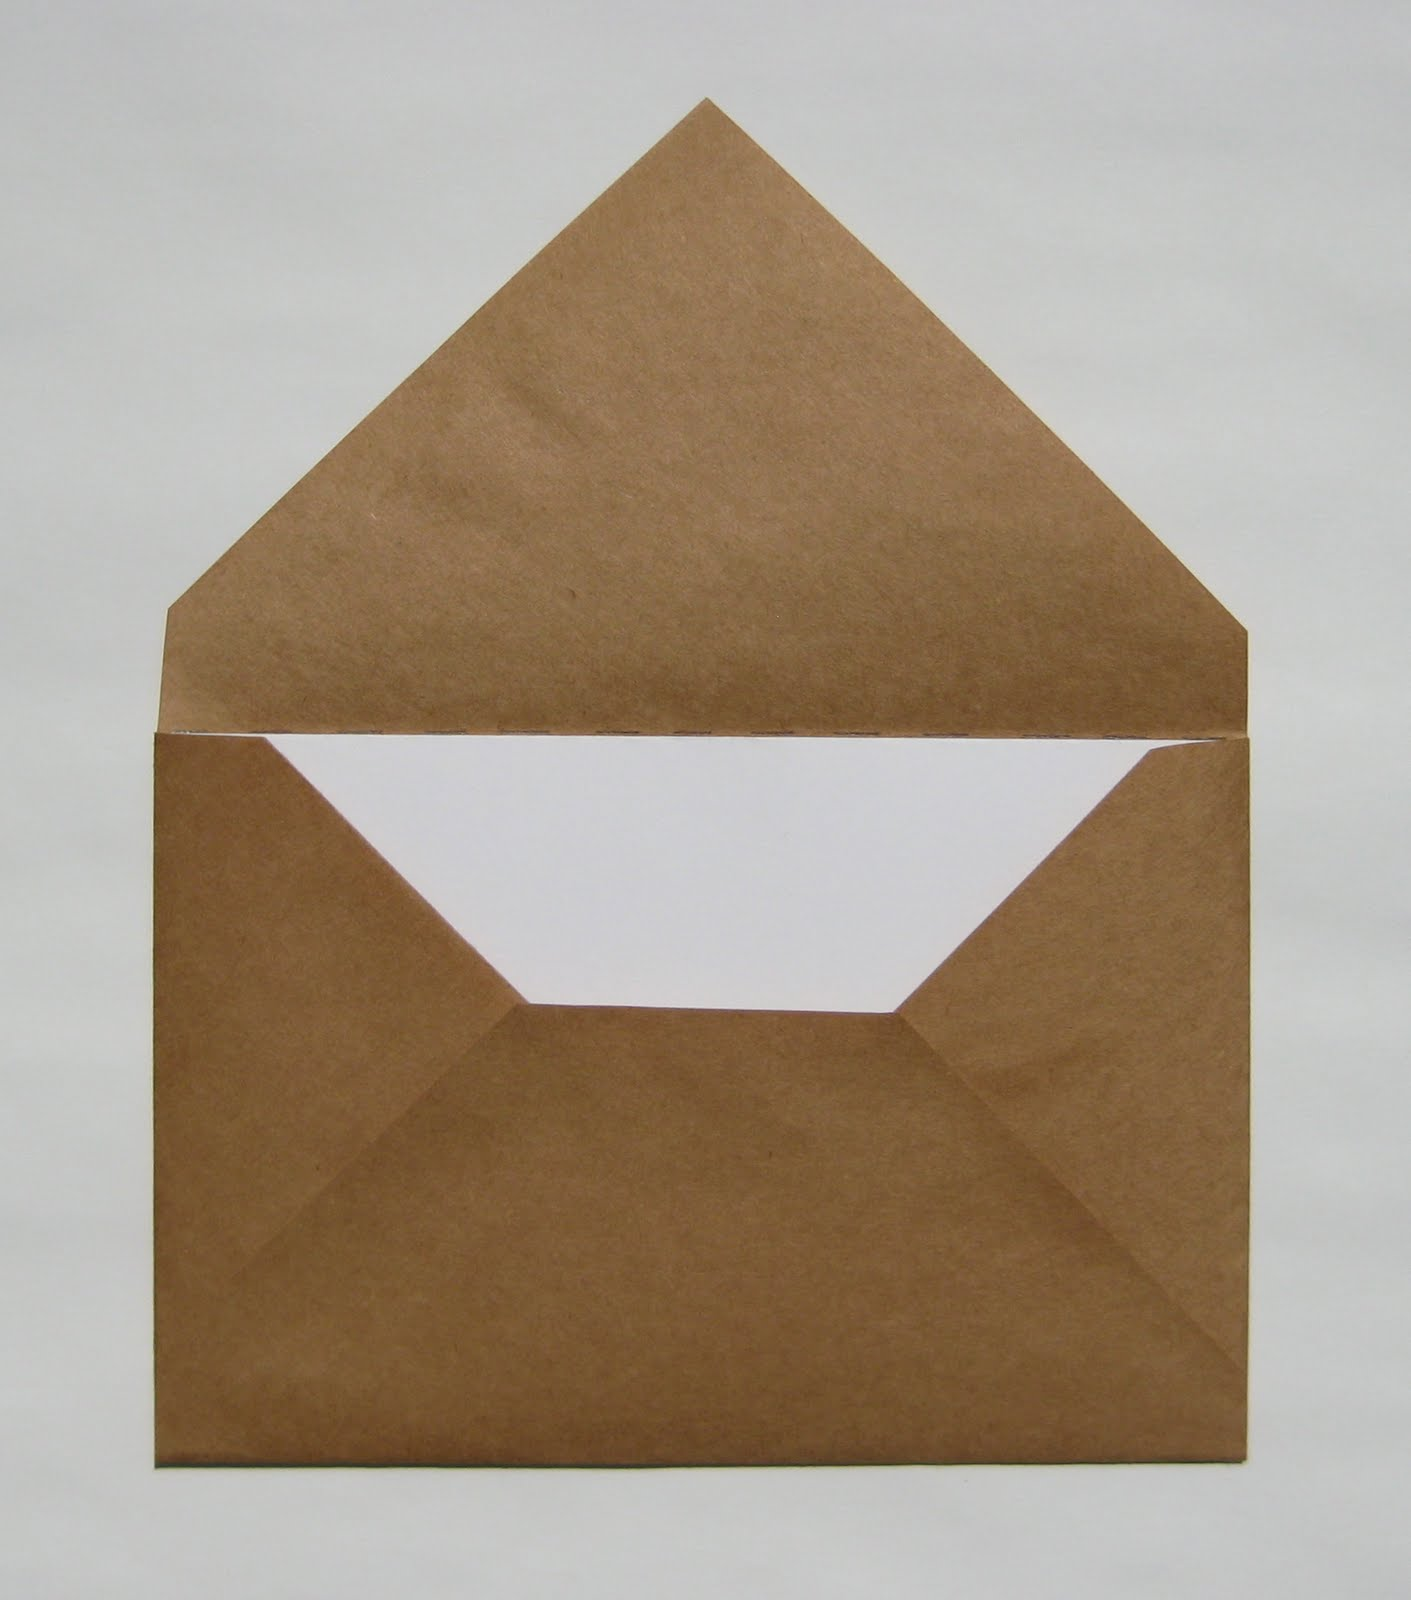 Easy envelopes for handmade cards teachkidsart easy envelopes for handmade cards bookmarktalkfo